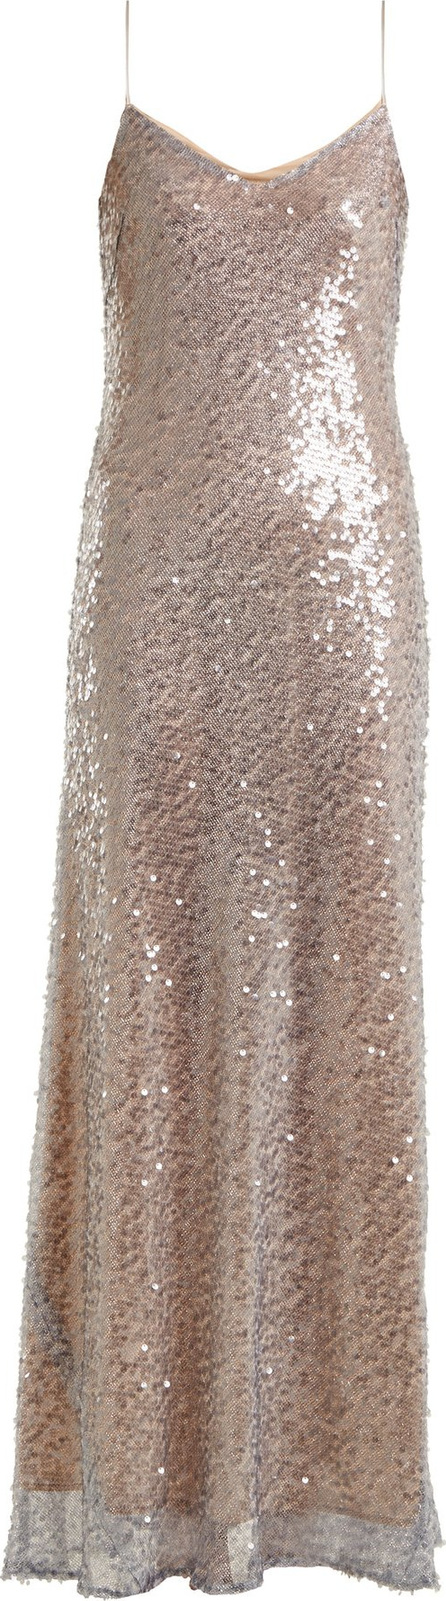 Galvan Estrella bias-cut sequin-embellished gown